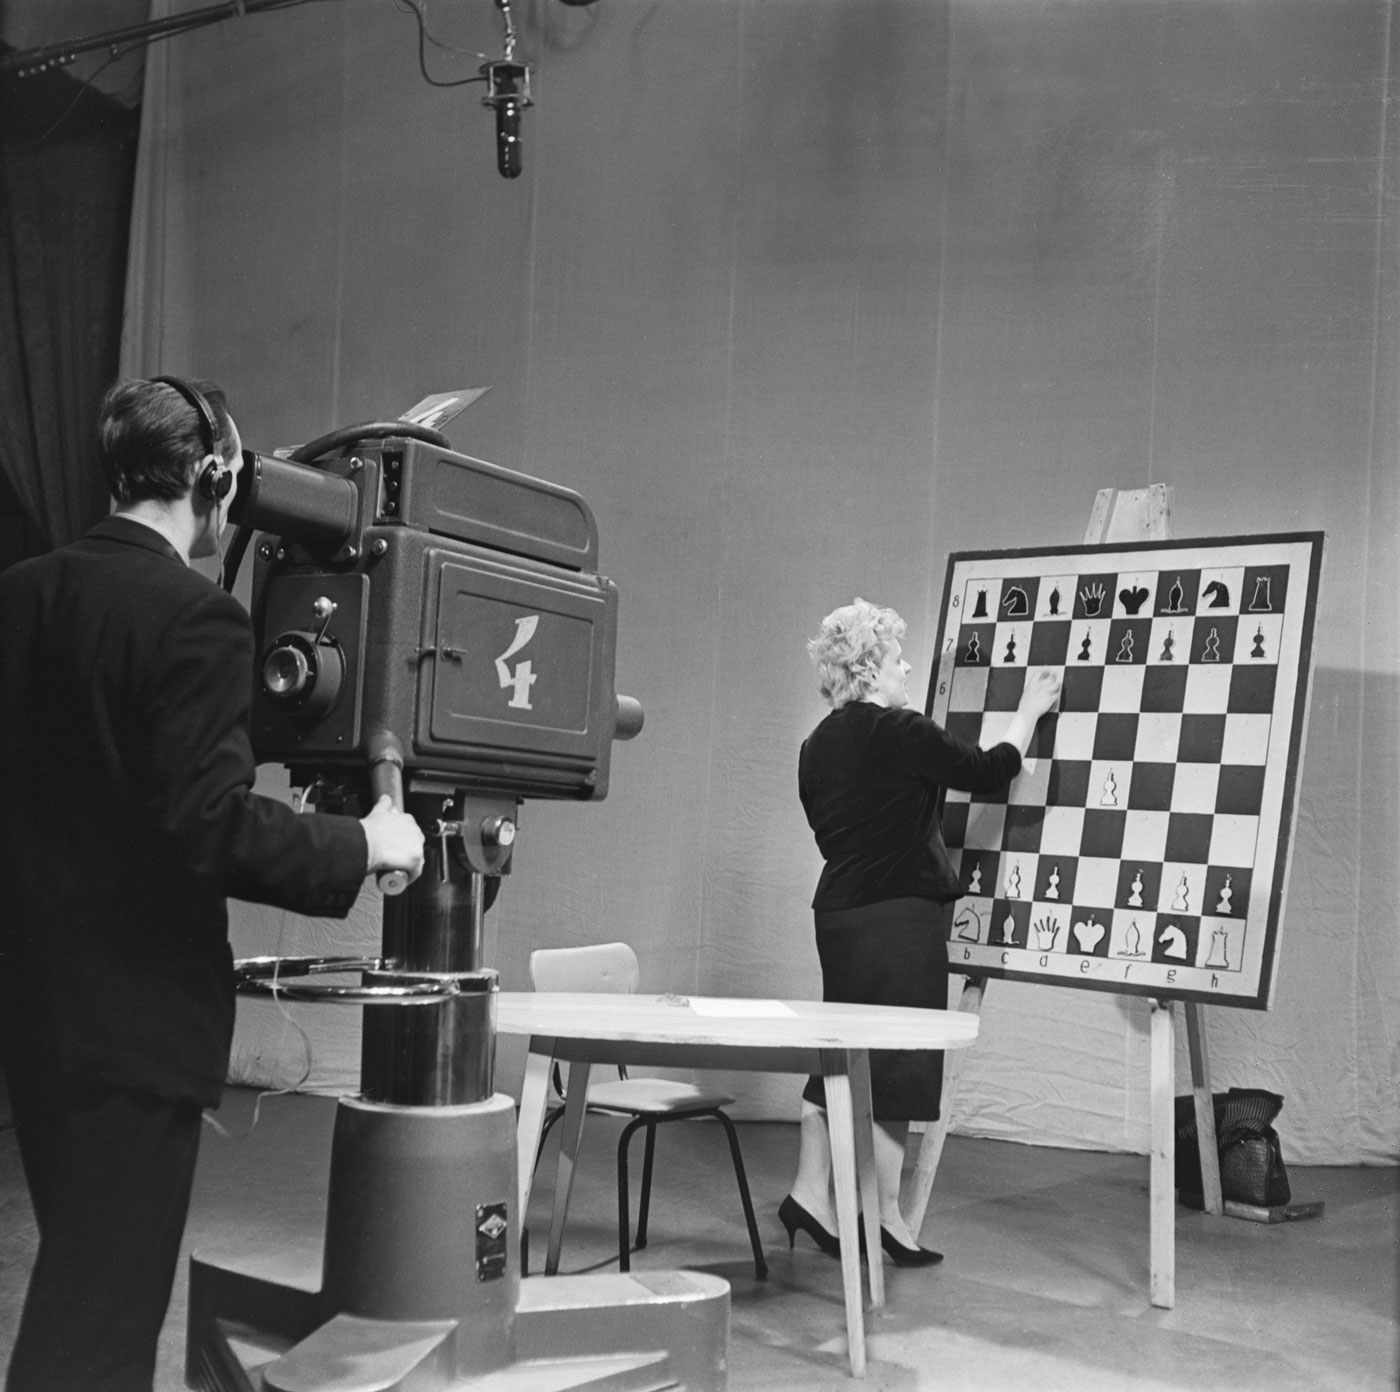 1964. A women analyzes a chess game during a TV show.